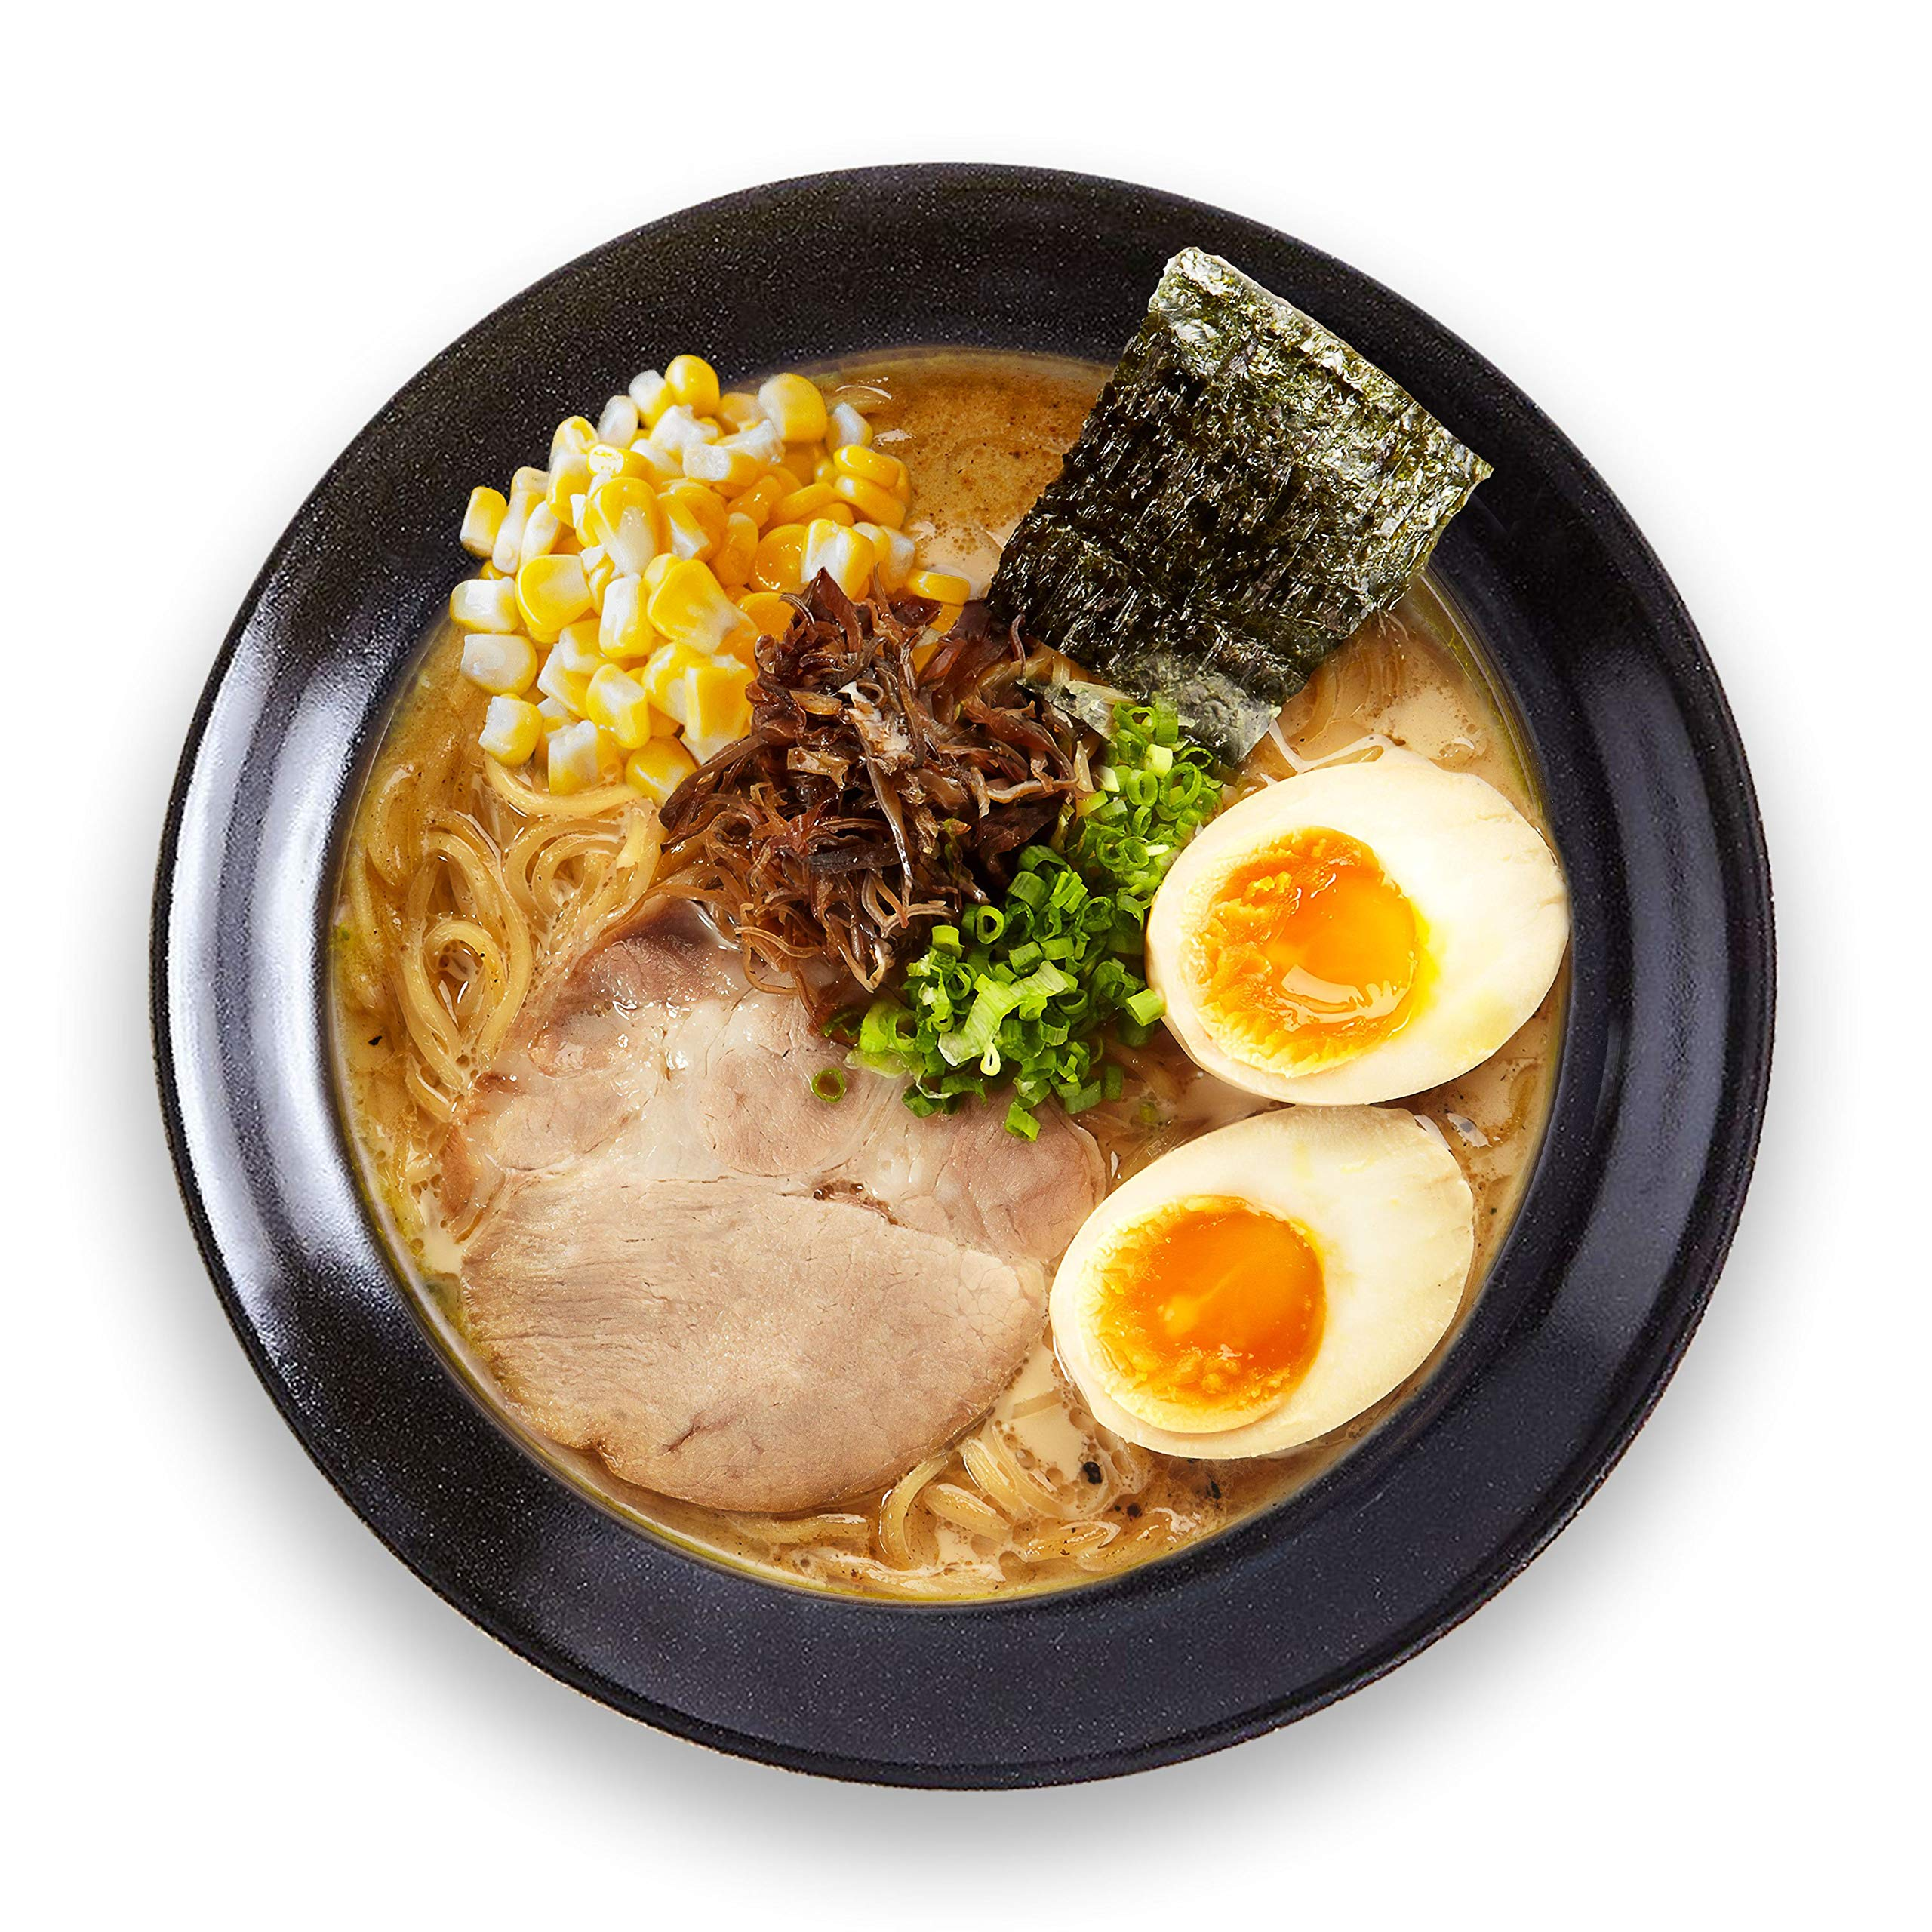 Takeout Kit, Japanese Tonkotsu Ramen Meal Kit, Serves 4 by Takeout Kit